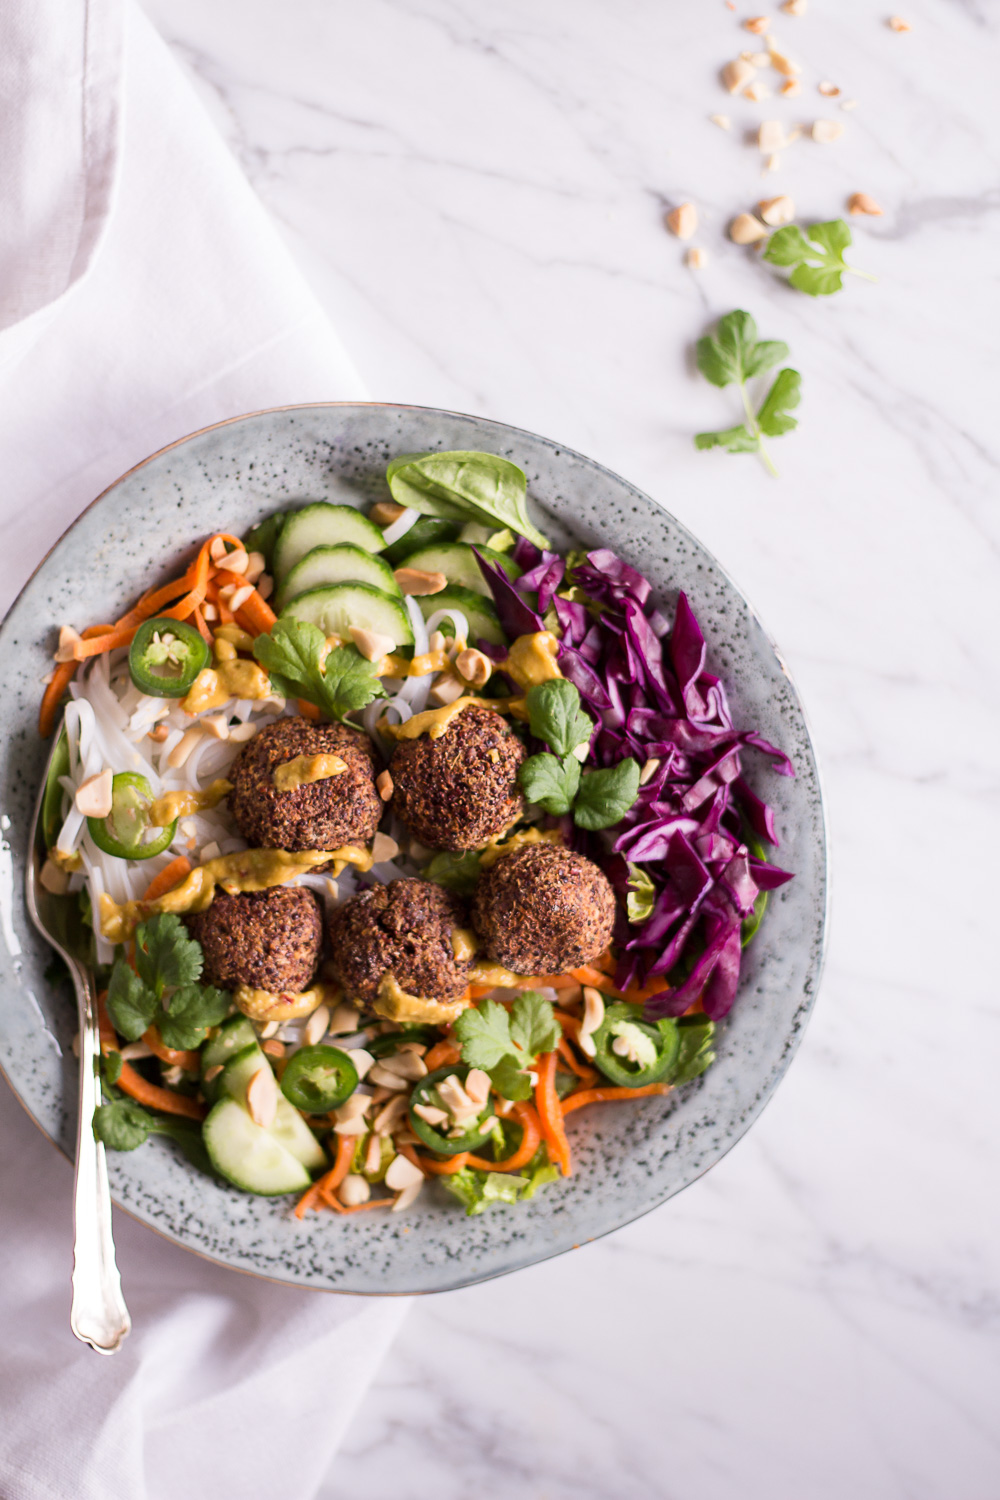 Vietnamese Banh Mi Bowl with plant based quinoa meatballs